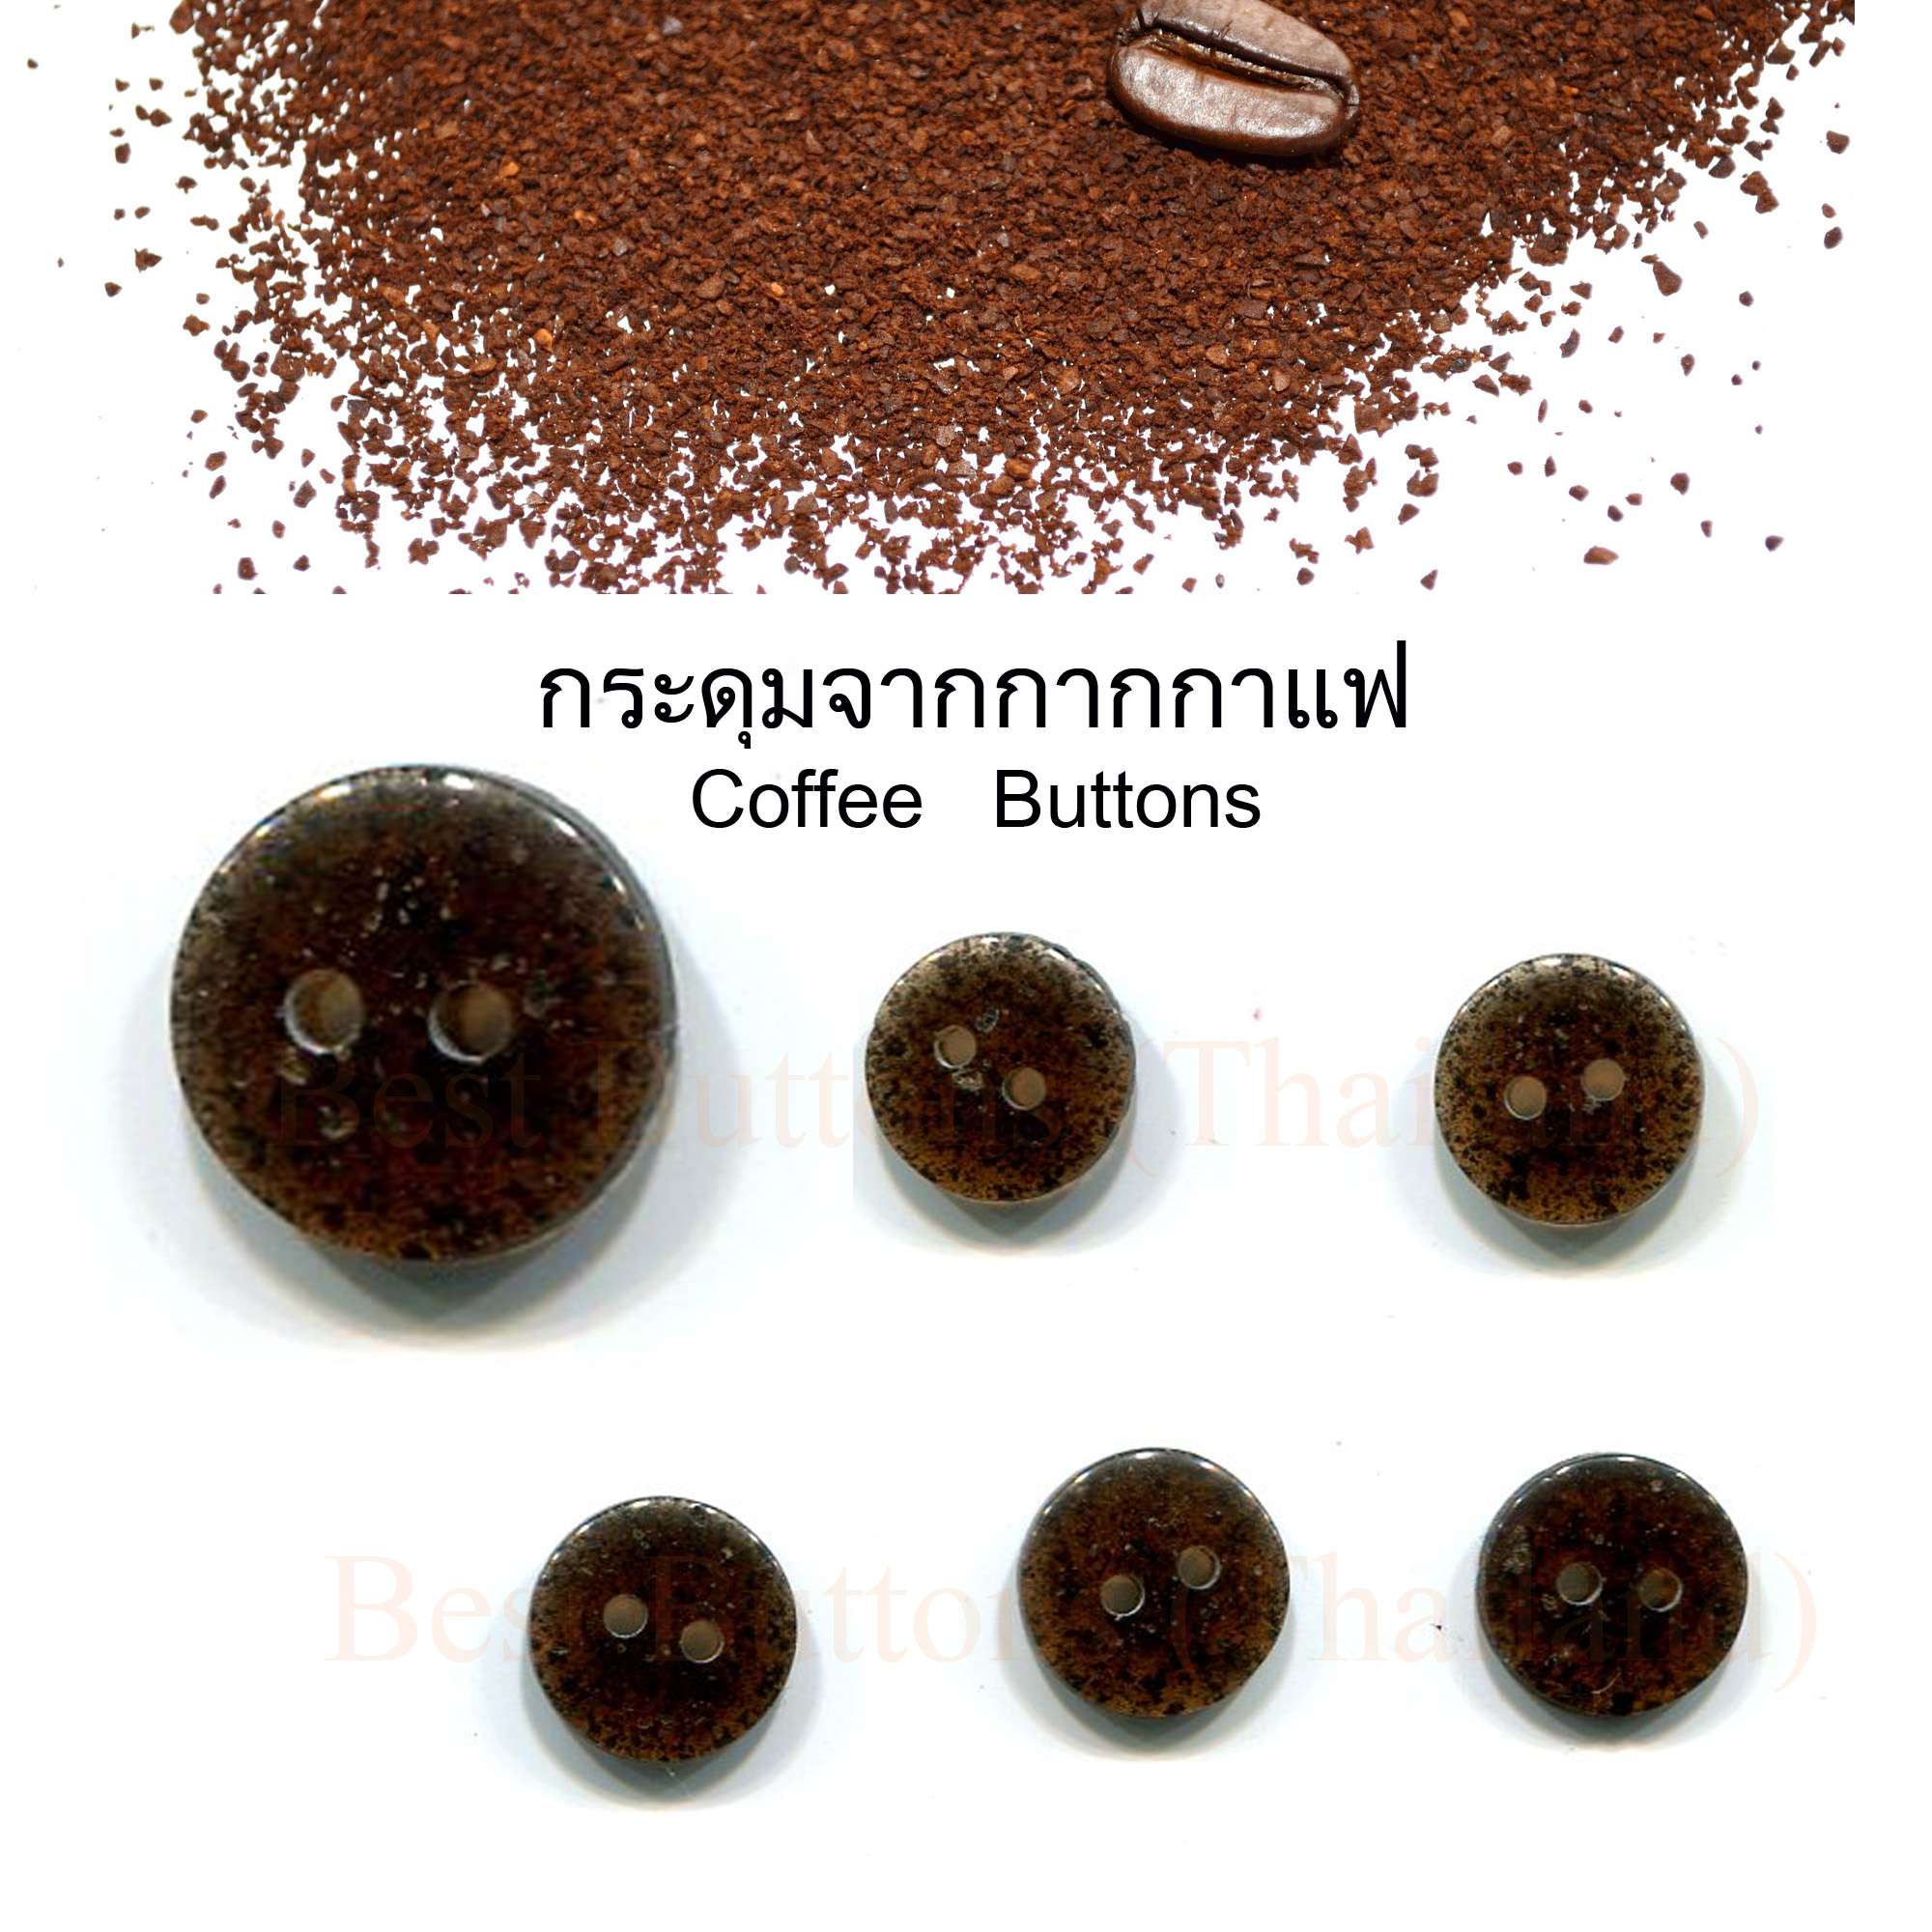 Coffee Buttons